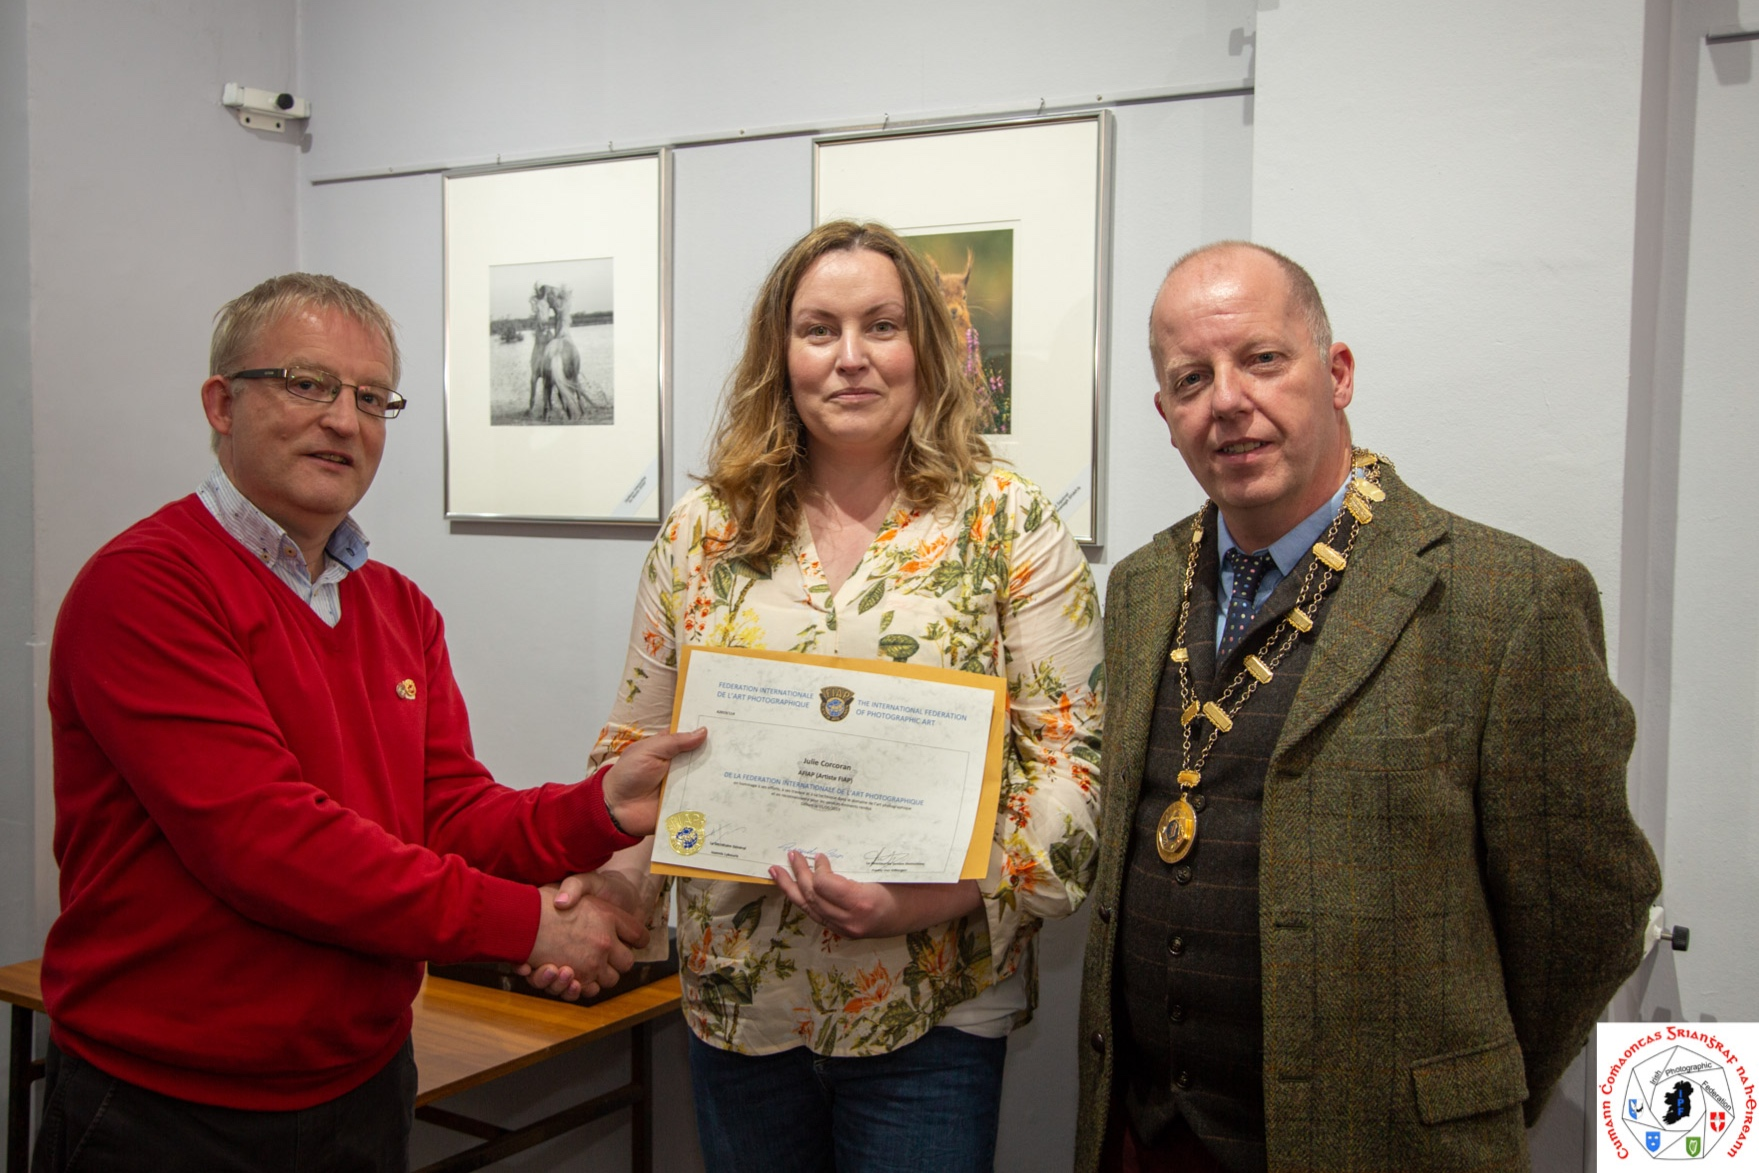 Me receiving my Artiste FIAP Award from FIAP Liaison officer, Paul Stanley FIPF, EFIAP/g and Irish Photographic Federation President, Dominic Reddin FIPF. Photo Credit: IPF Vice-President, Liam Beattie.